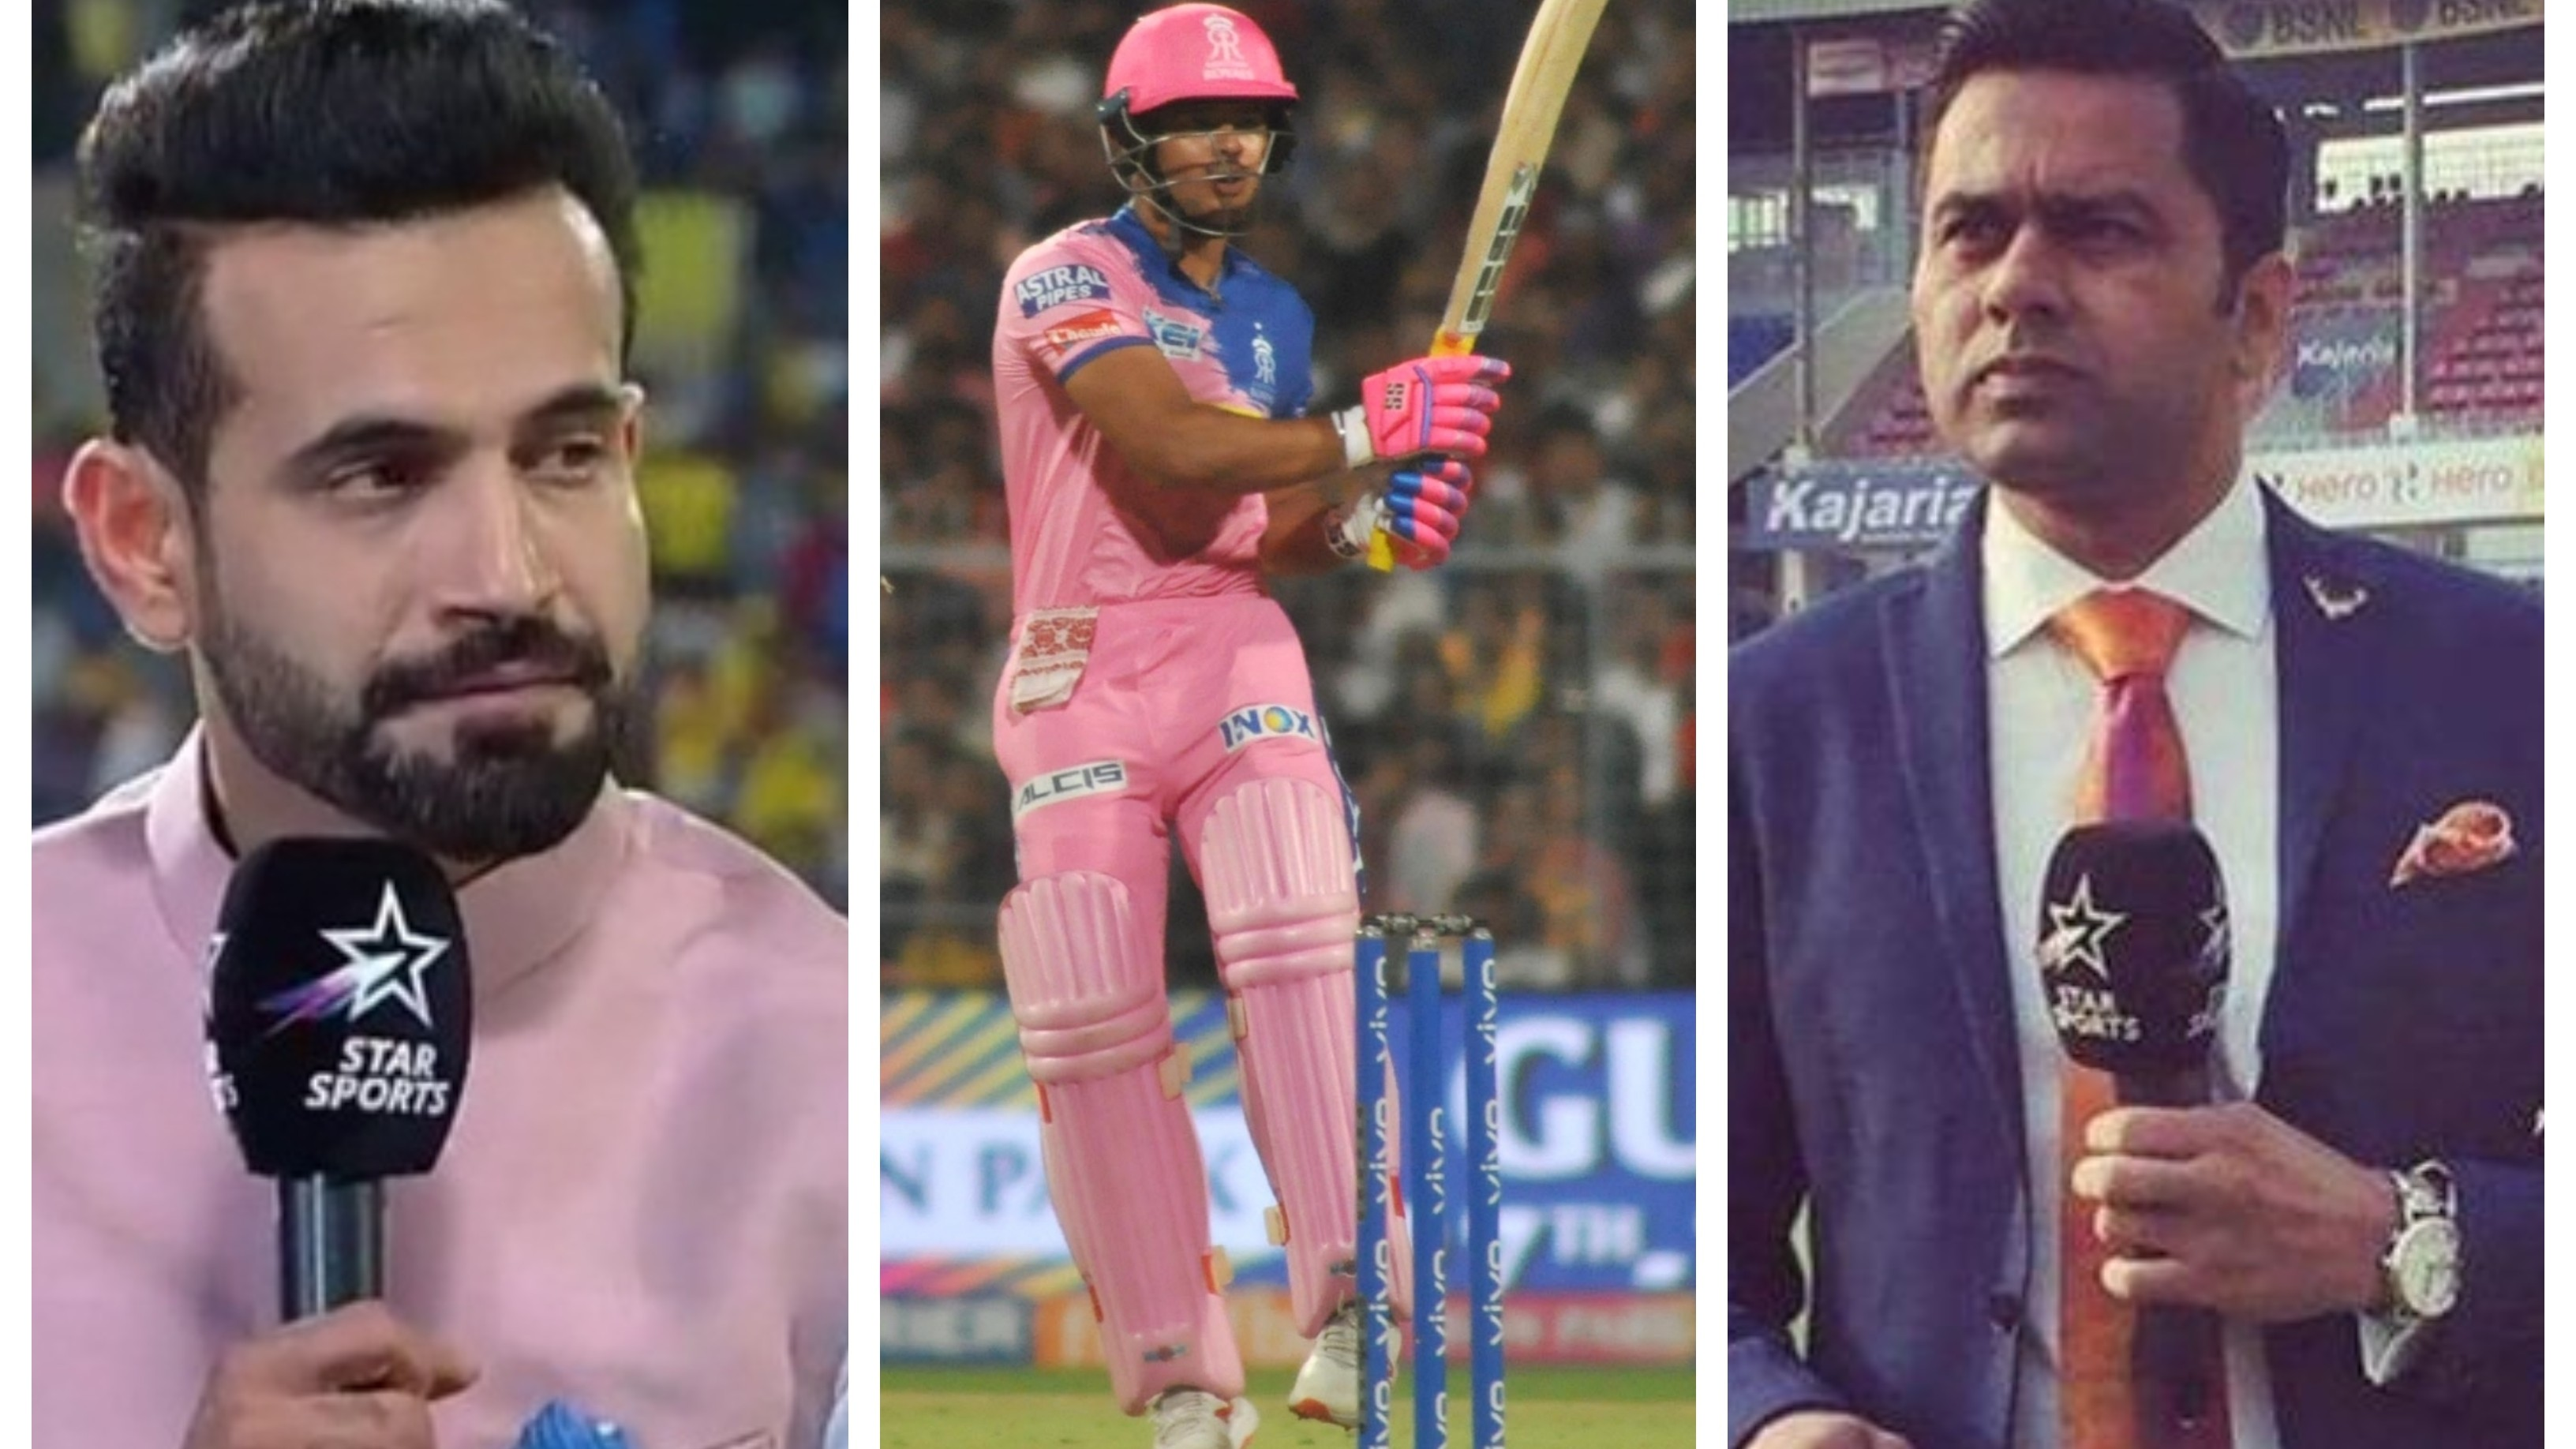 IPL 2019: Twitter reacts as Riyan Parag's stellar knock powers RR to three-wicket win over KKR